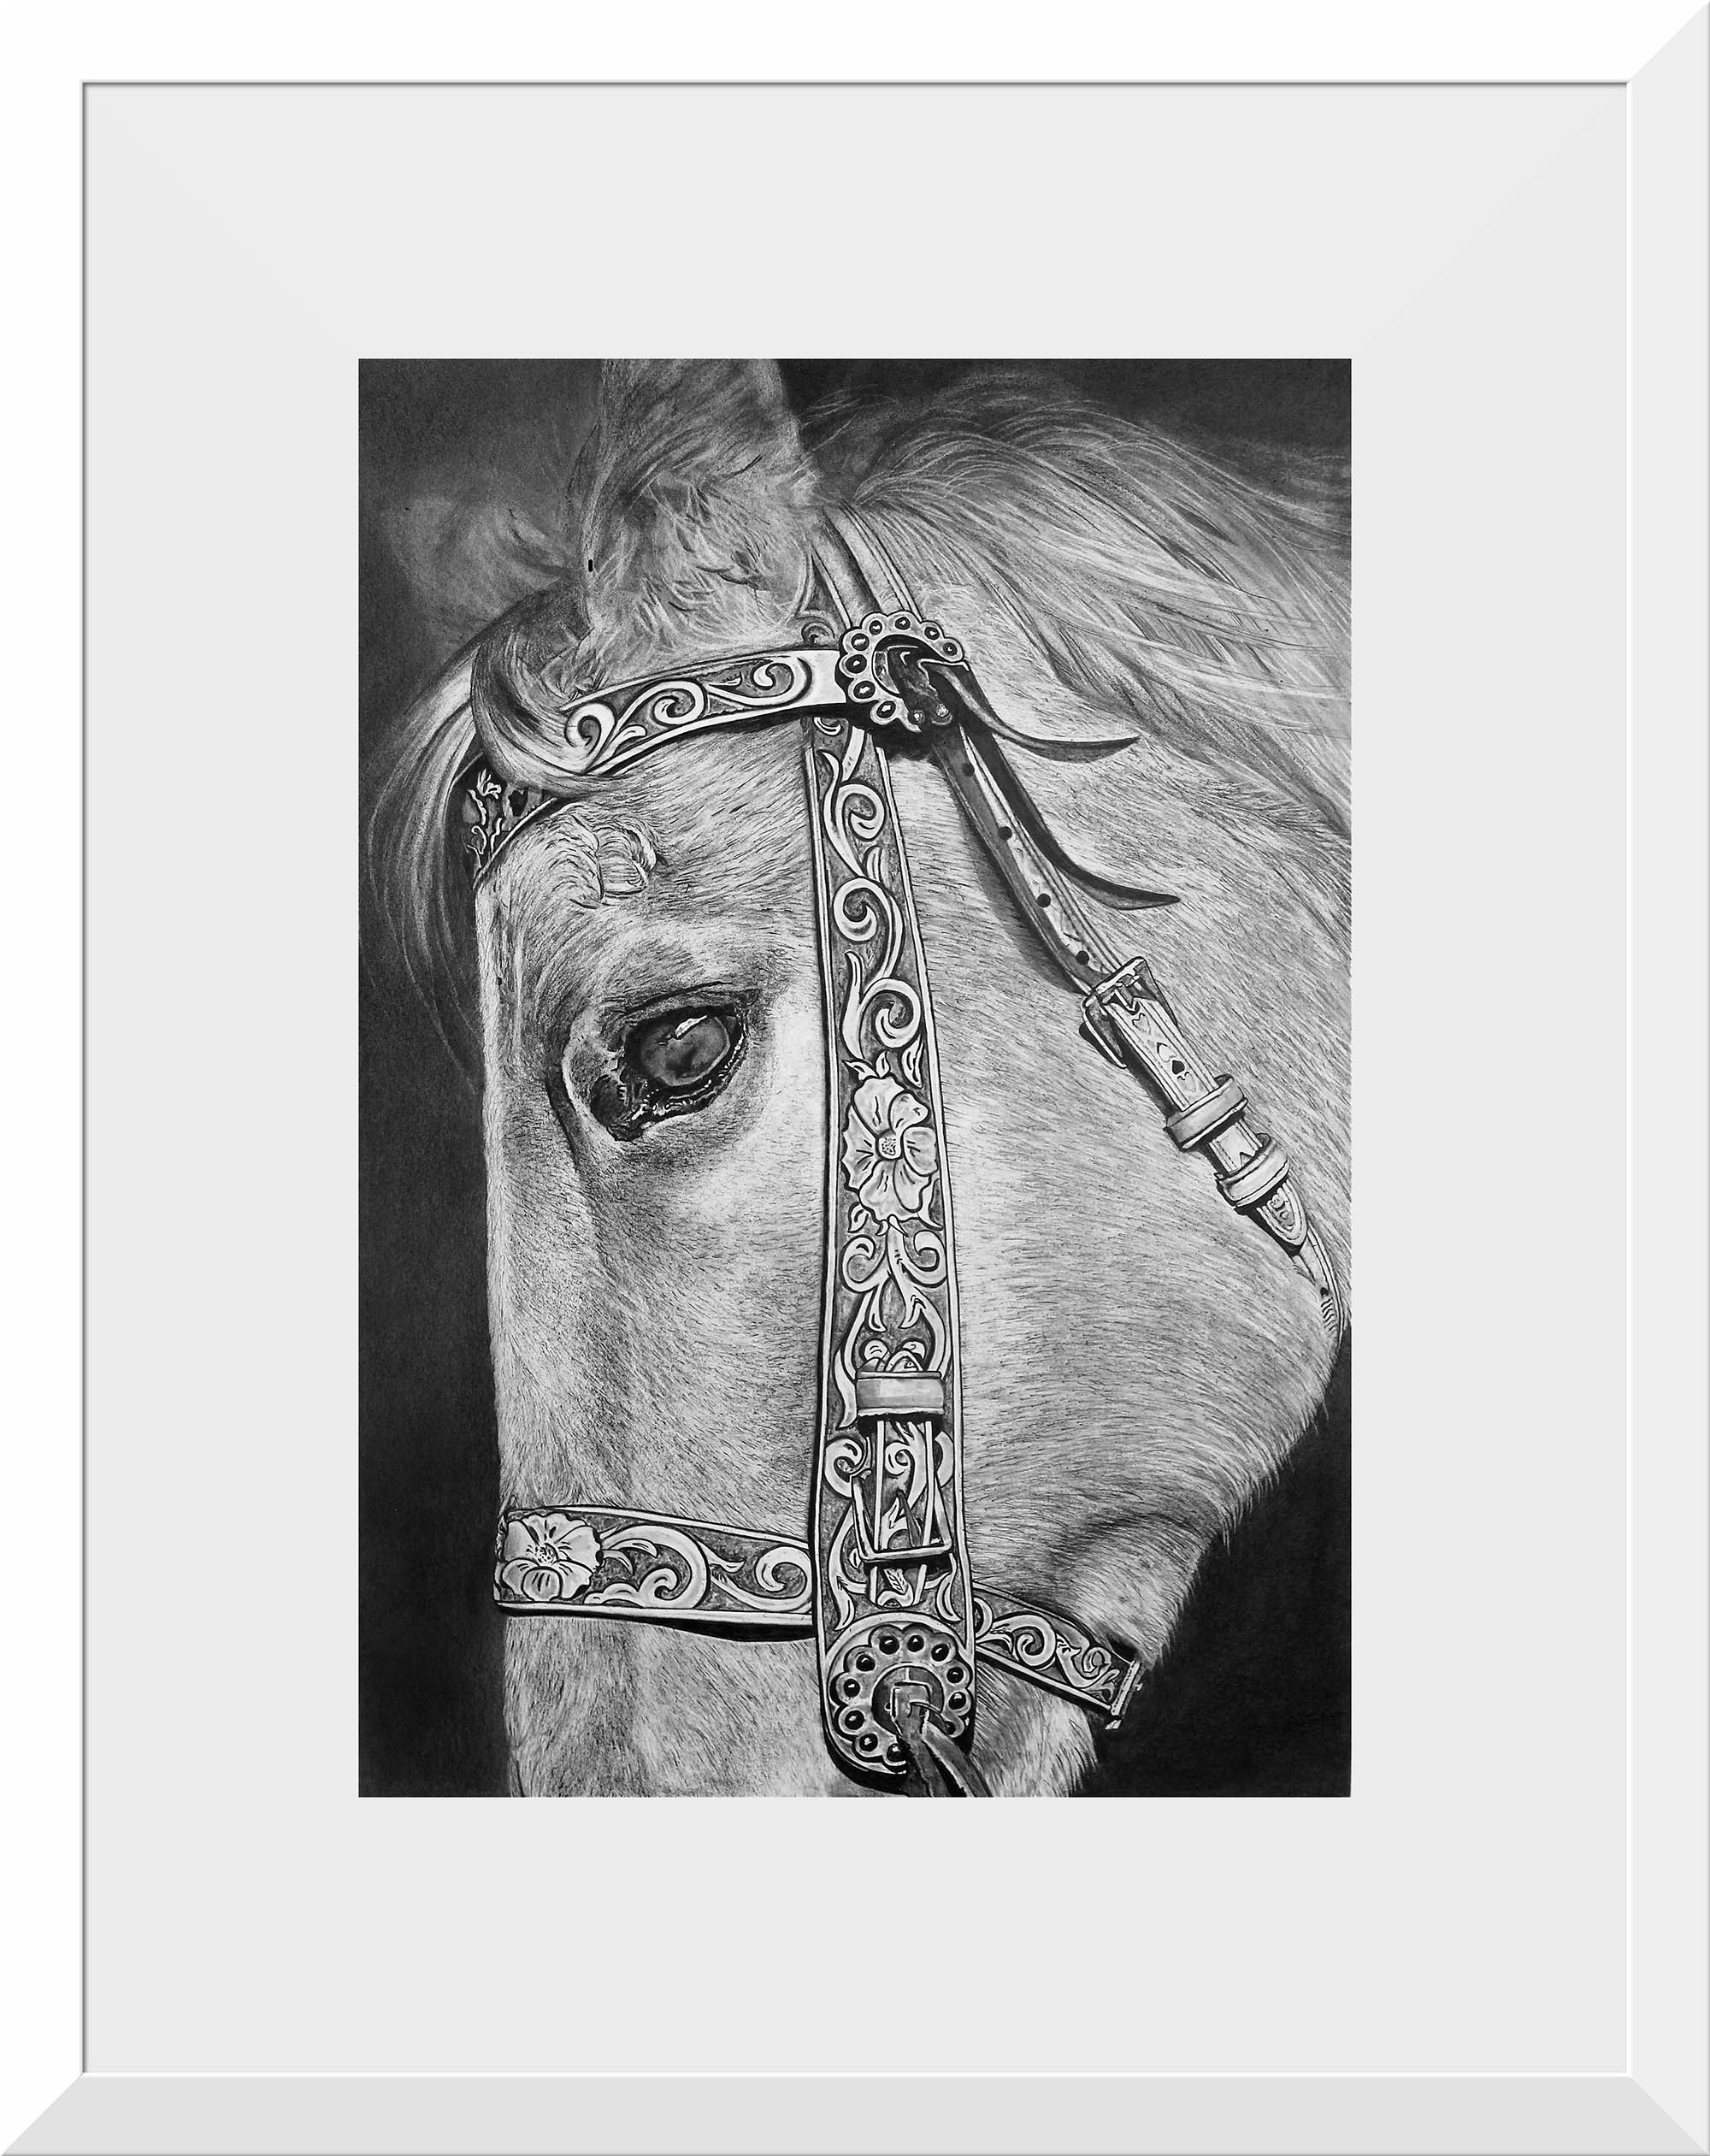 - 'Beautiful Horse'A2 size paper. A1 size frameGraphite on paper, framed & ready to hang.Also available as a print$795ENQUIRE